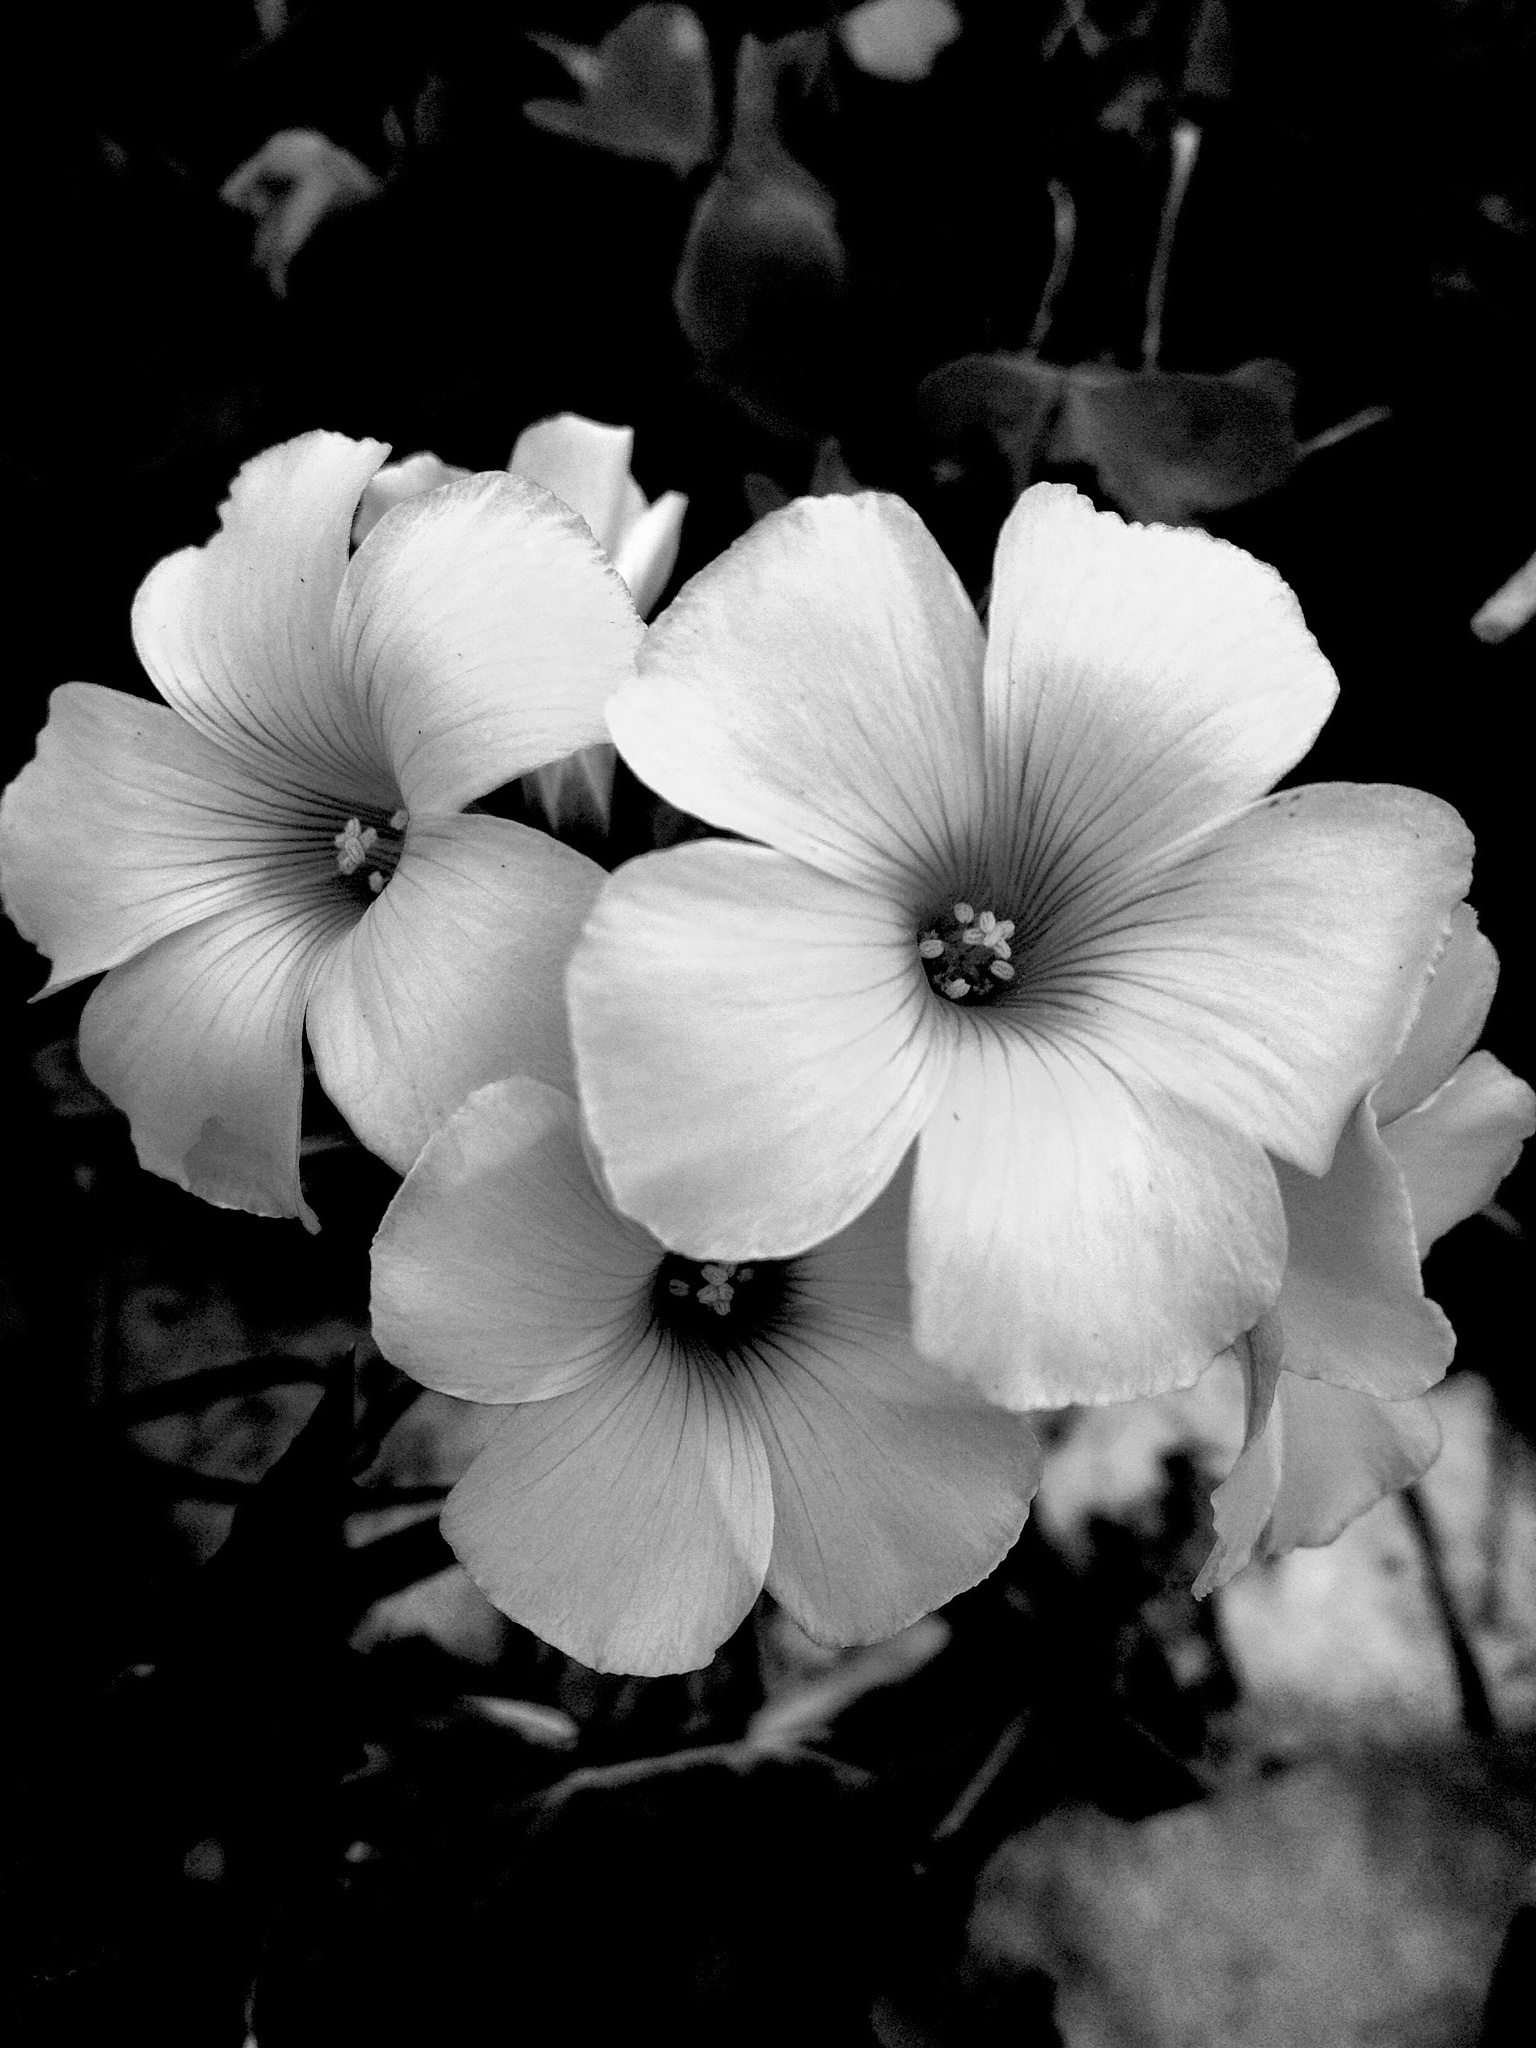 Flowers in monochrome  by Rui Nogueira